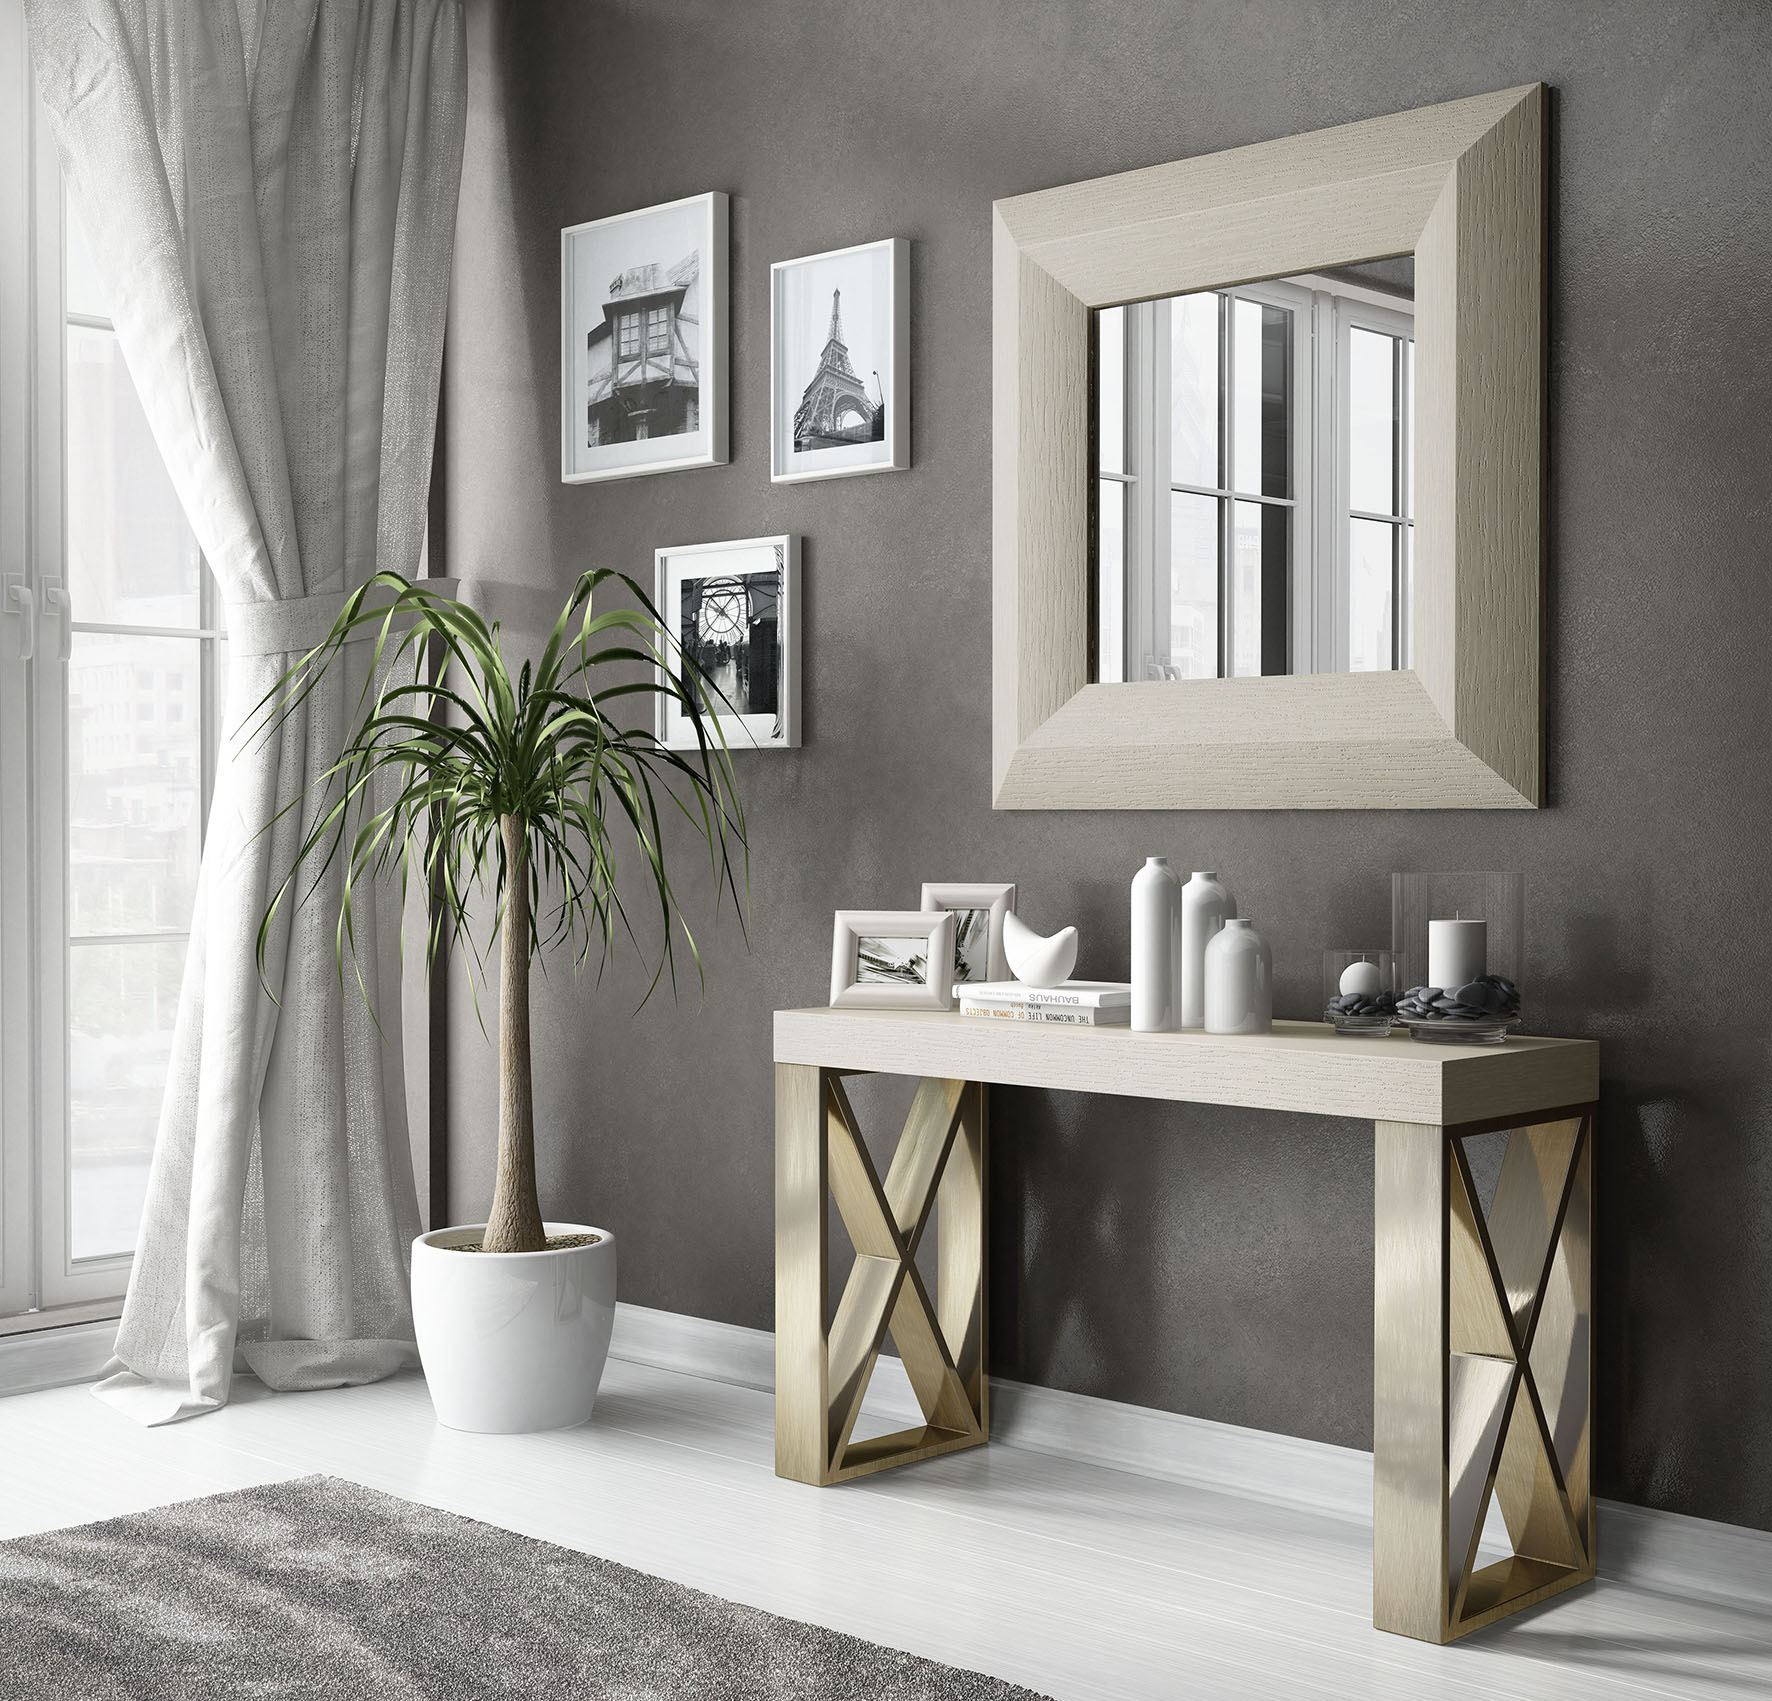 Brands Franco AZKARY II CONSOLES, Spain CII.40 Console Table